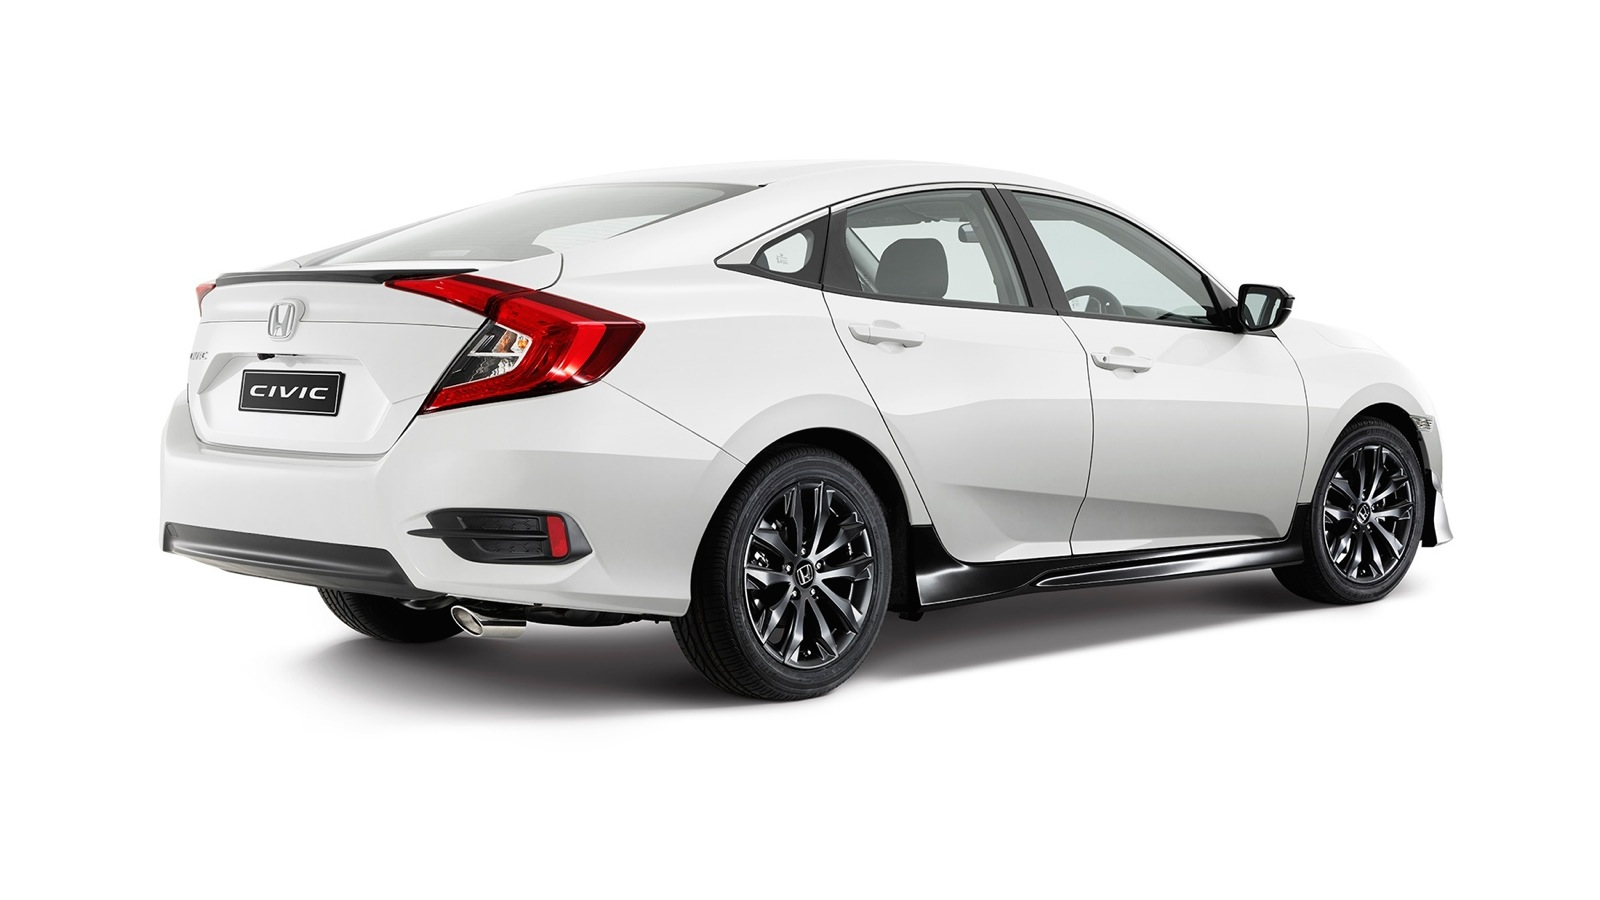 2016 honda civic black pack option unveiled photos 1 of 2 for All black honda civic